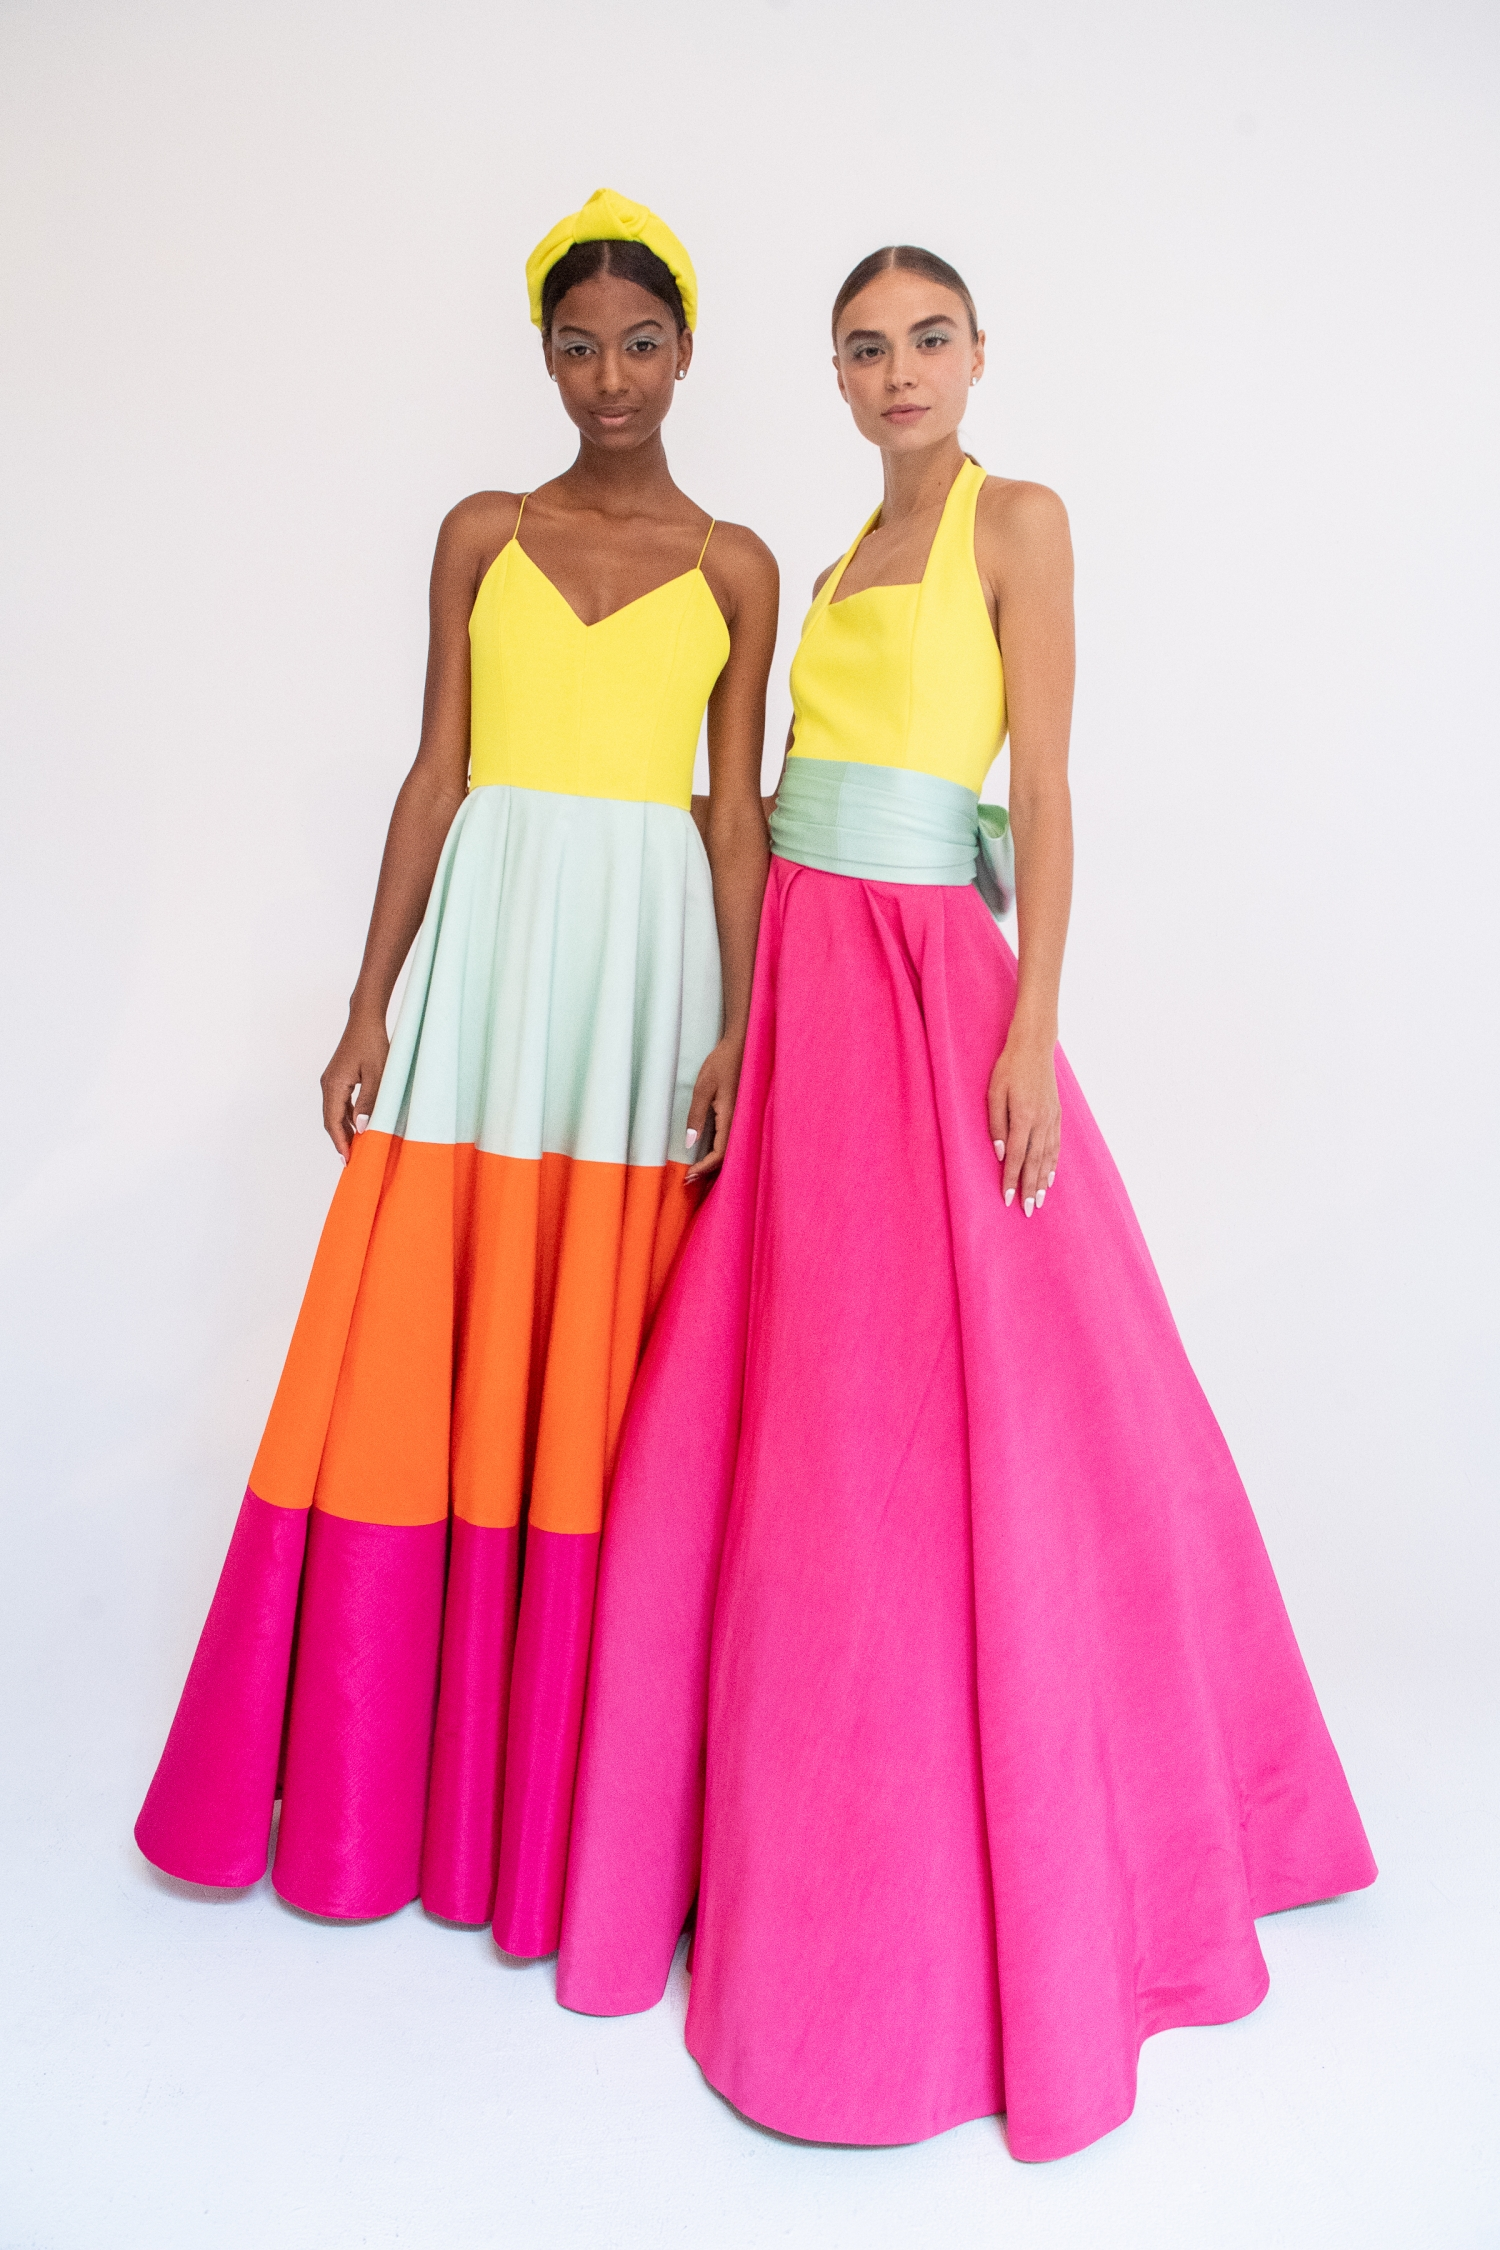 alice__olivia_2020_Spring_collection-Small-10194